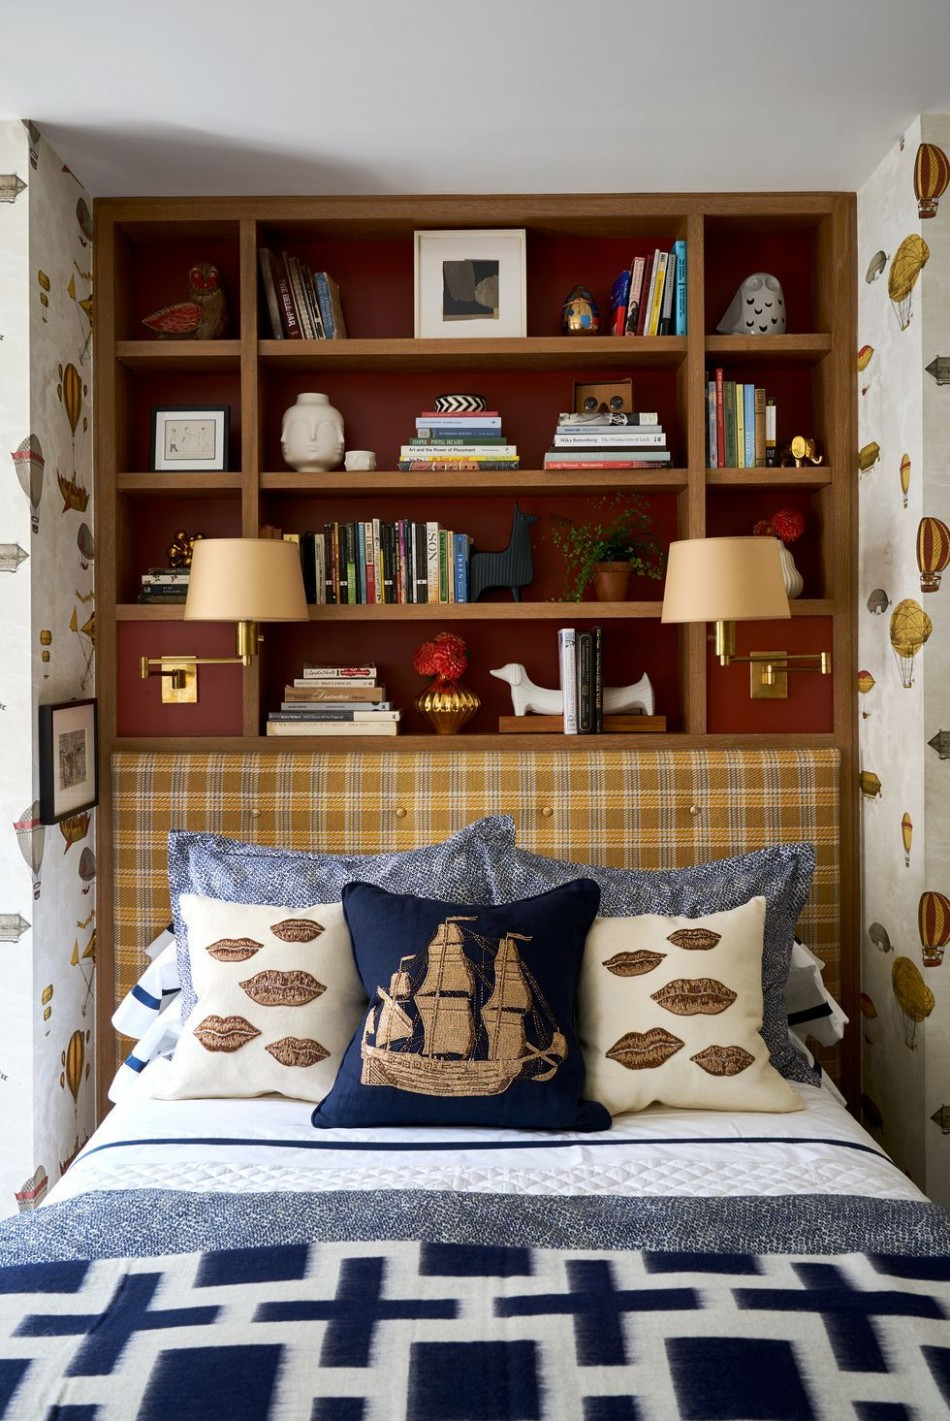 11 Small Bedroom Design Ideas - How to Decorate a Small Bedroom - Bedroom Ideas Space Saving